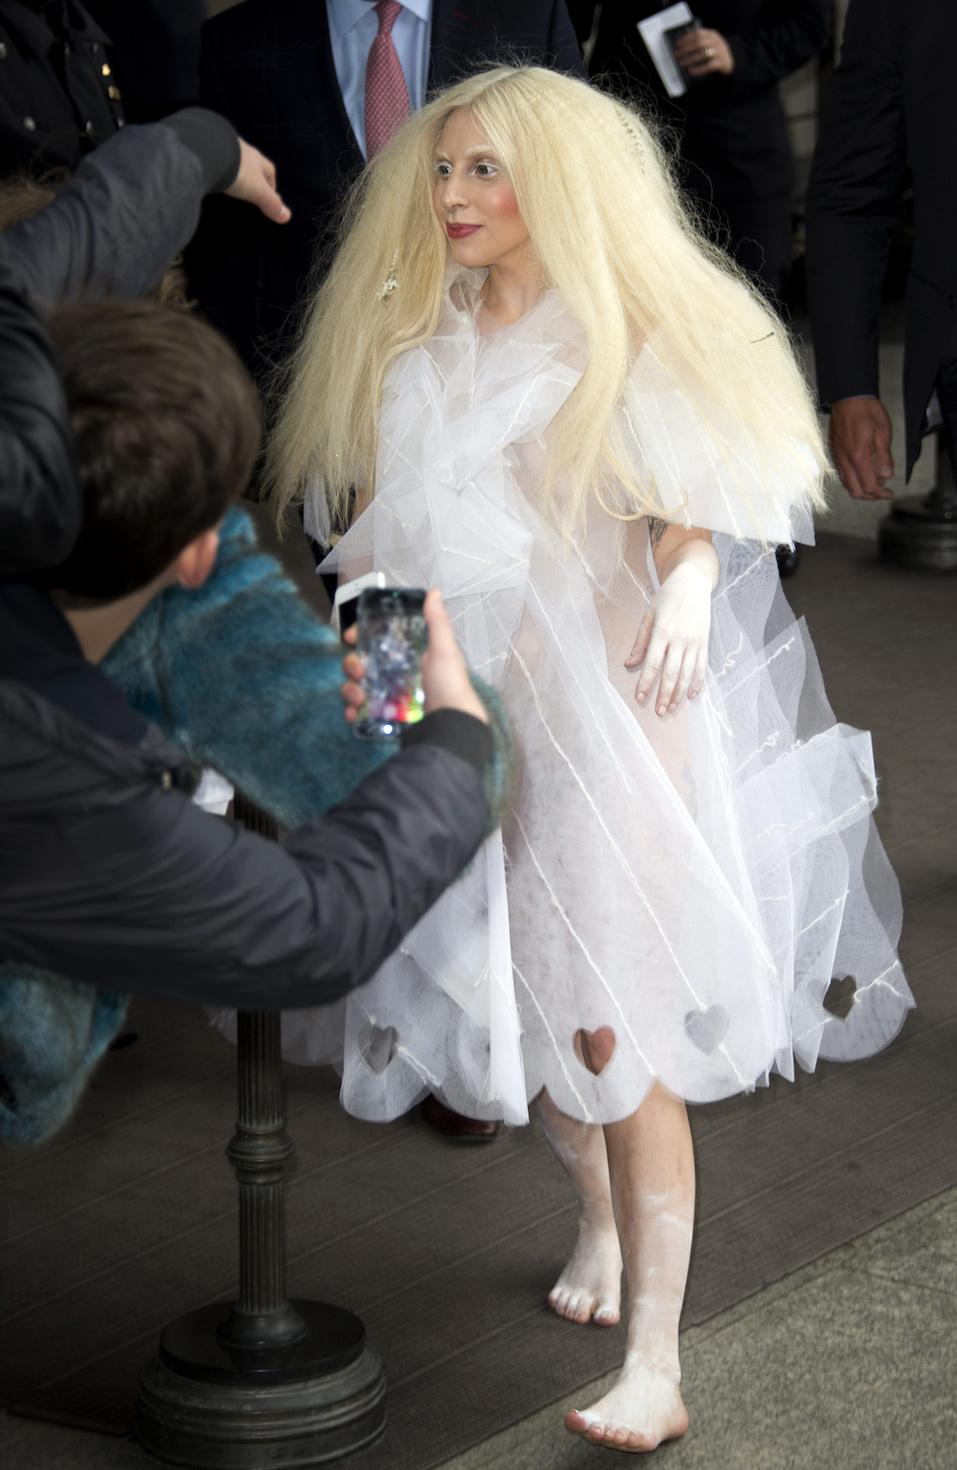 US singer Lady Gaga greet fans as she leaves the Ritz Carlton hotel on Potsdamer Platz in Berlin